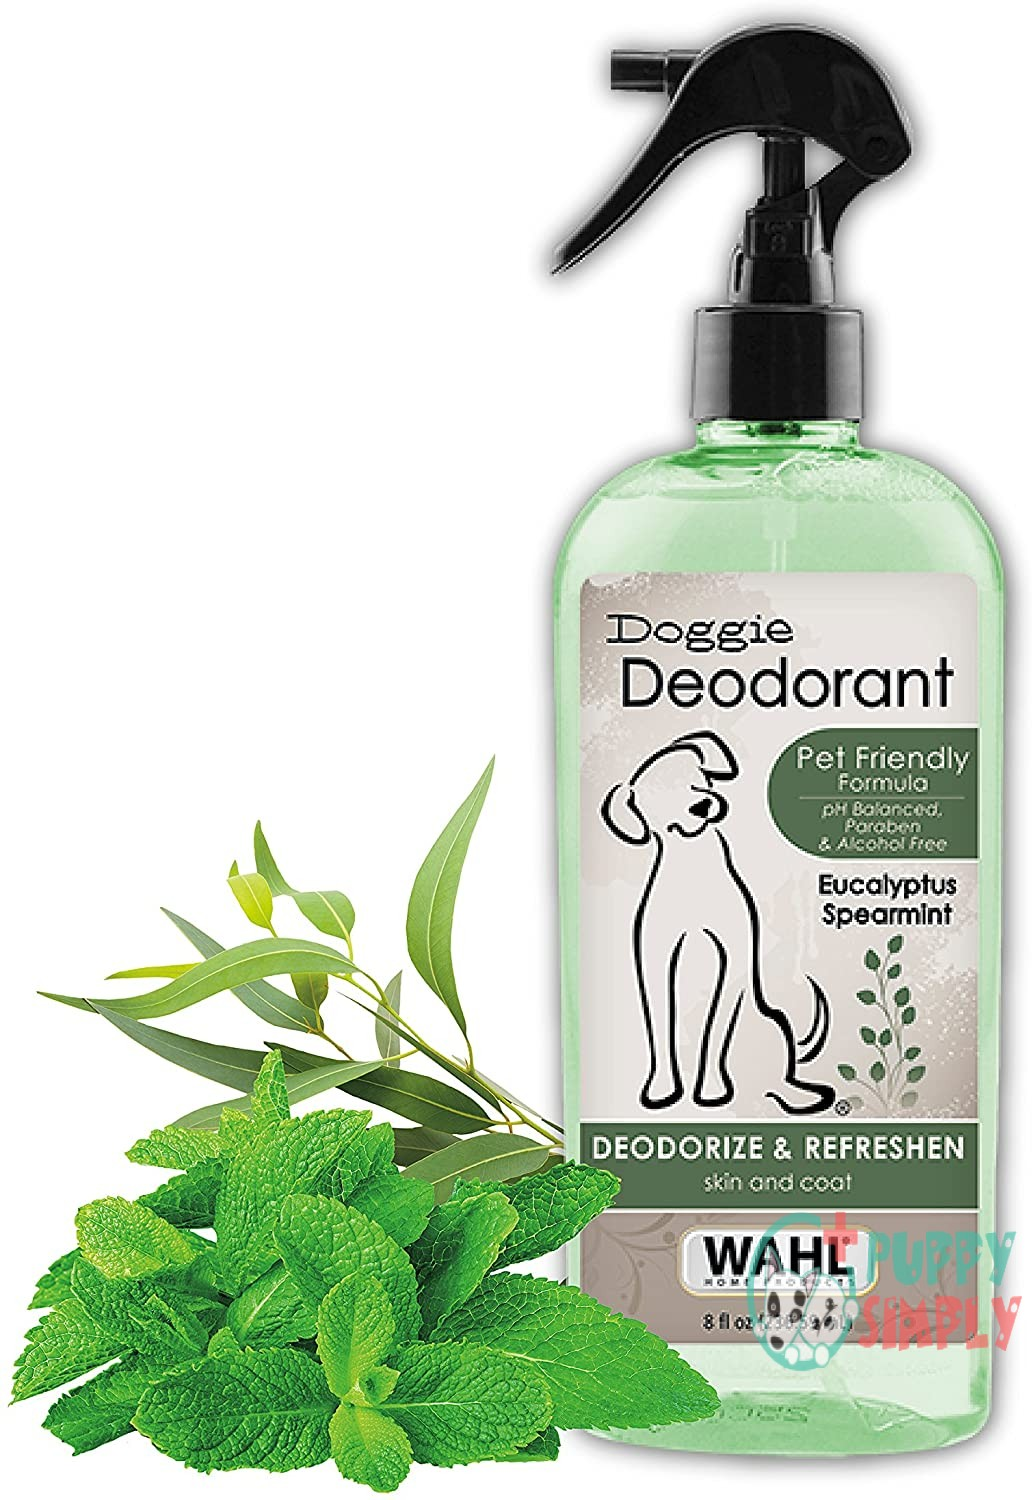 Wahl Deodorizing & Refreshing Pet